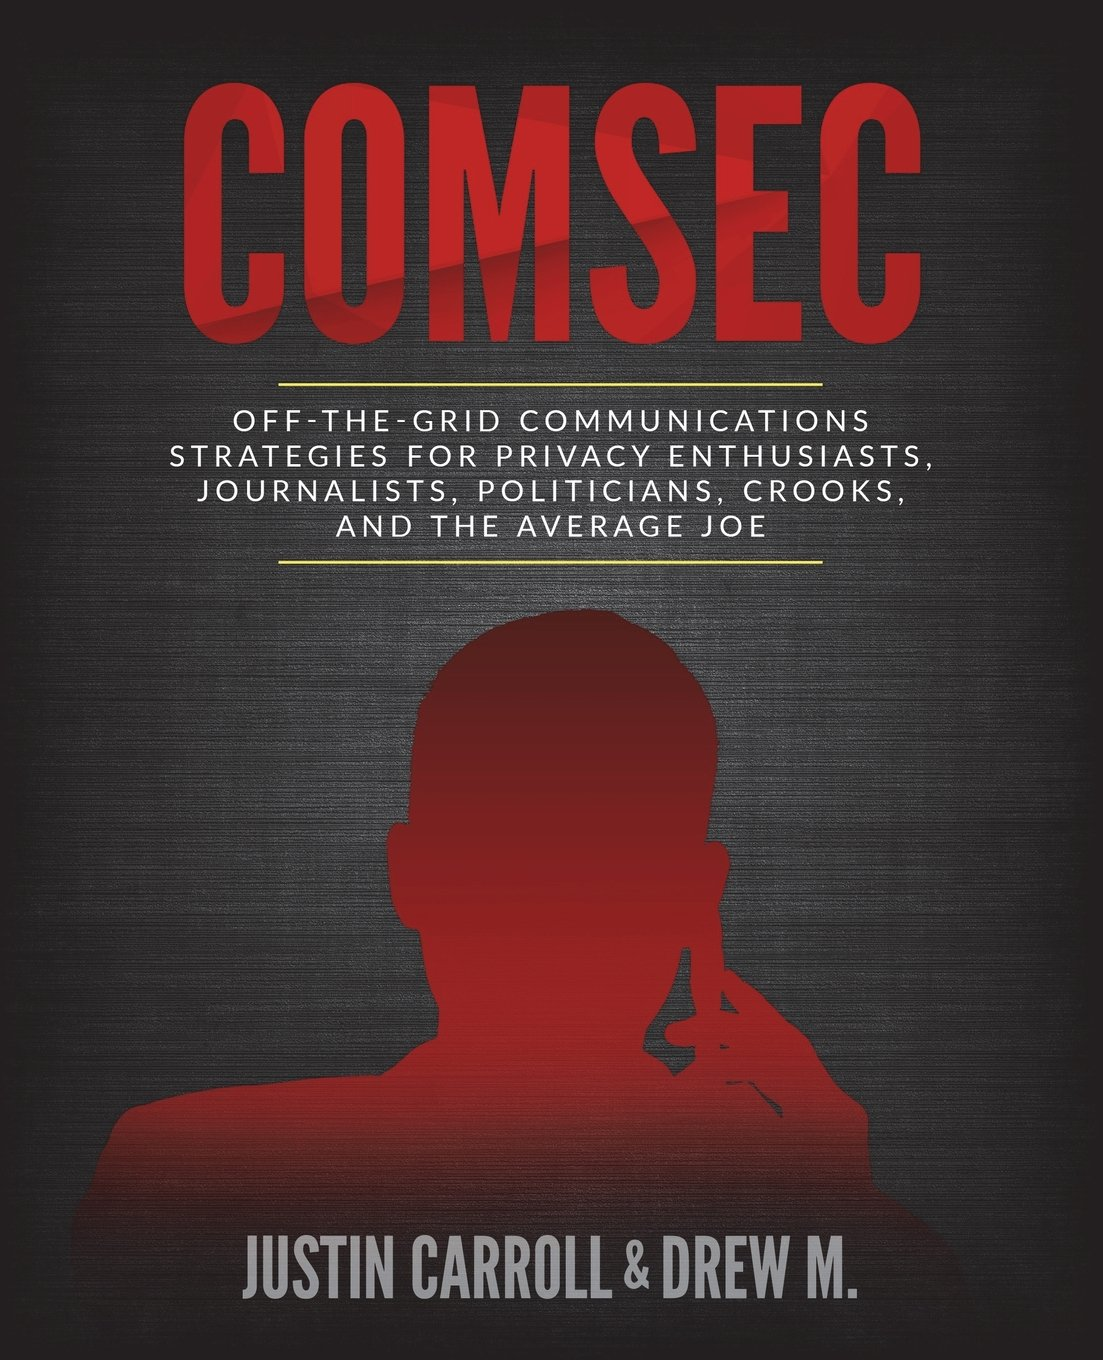 Image OfComSec: Off-The-Grid Communication Strategies For Privacy Enthusiasts, Journalists, Politicians, Crooks, And The Average Joe